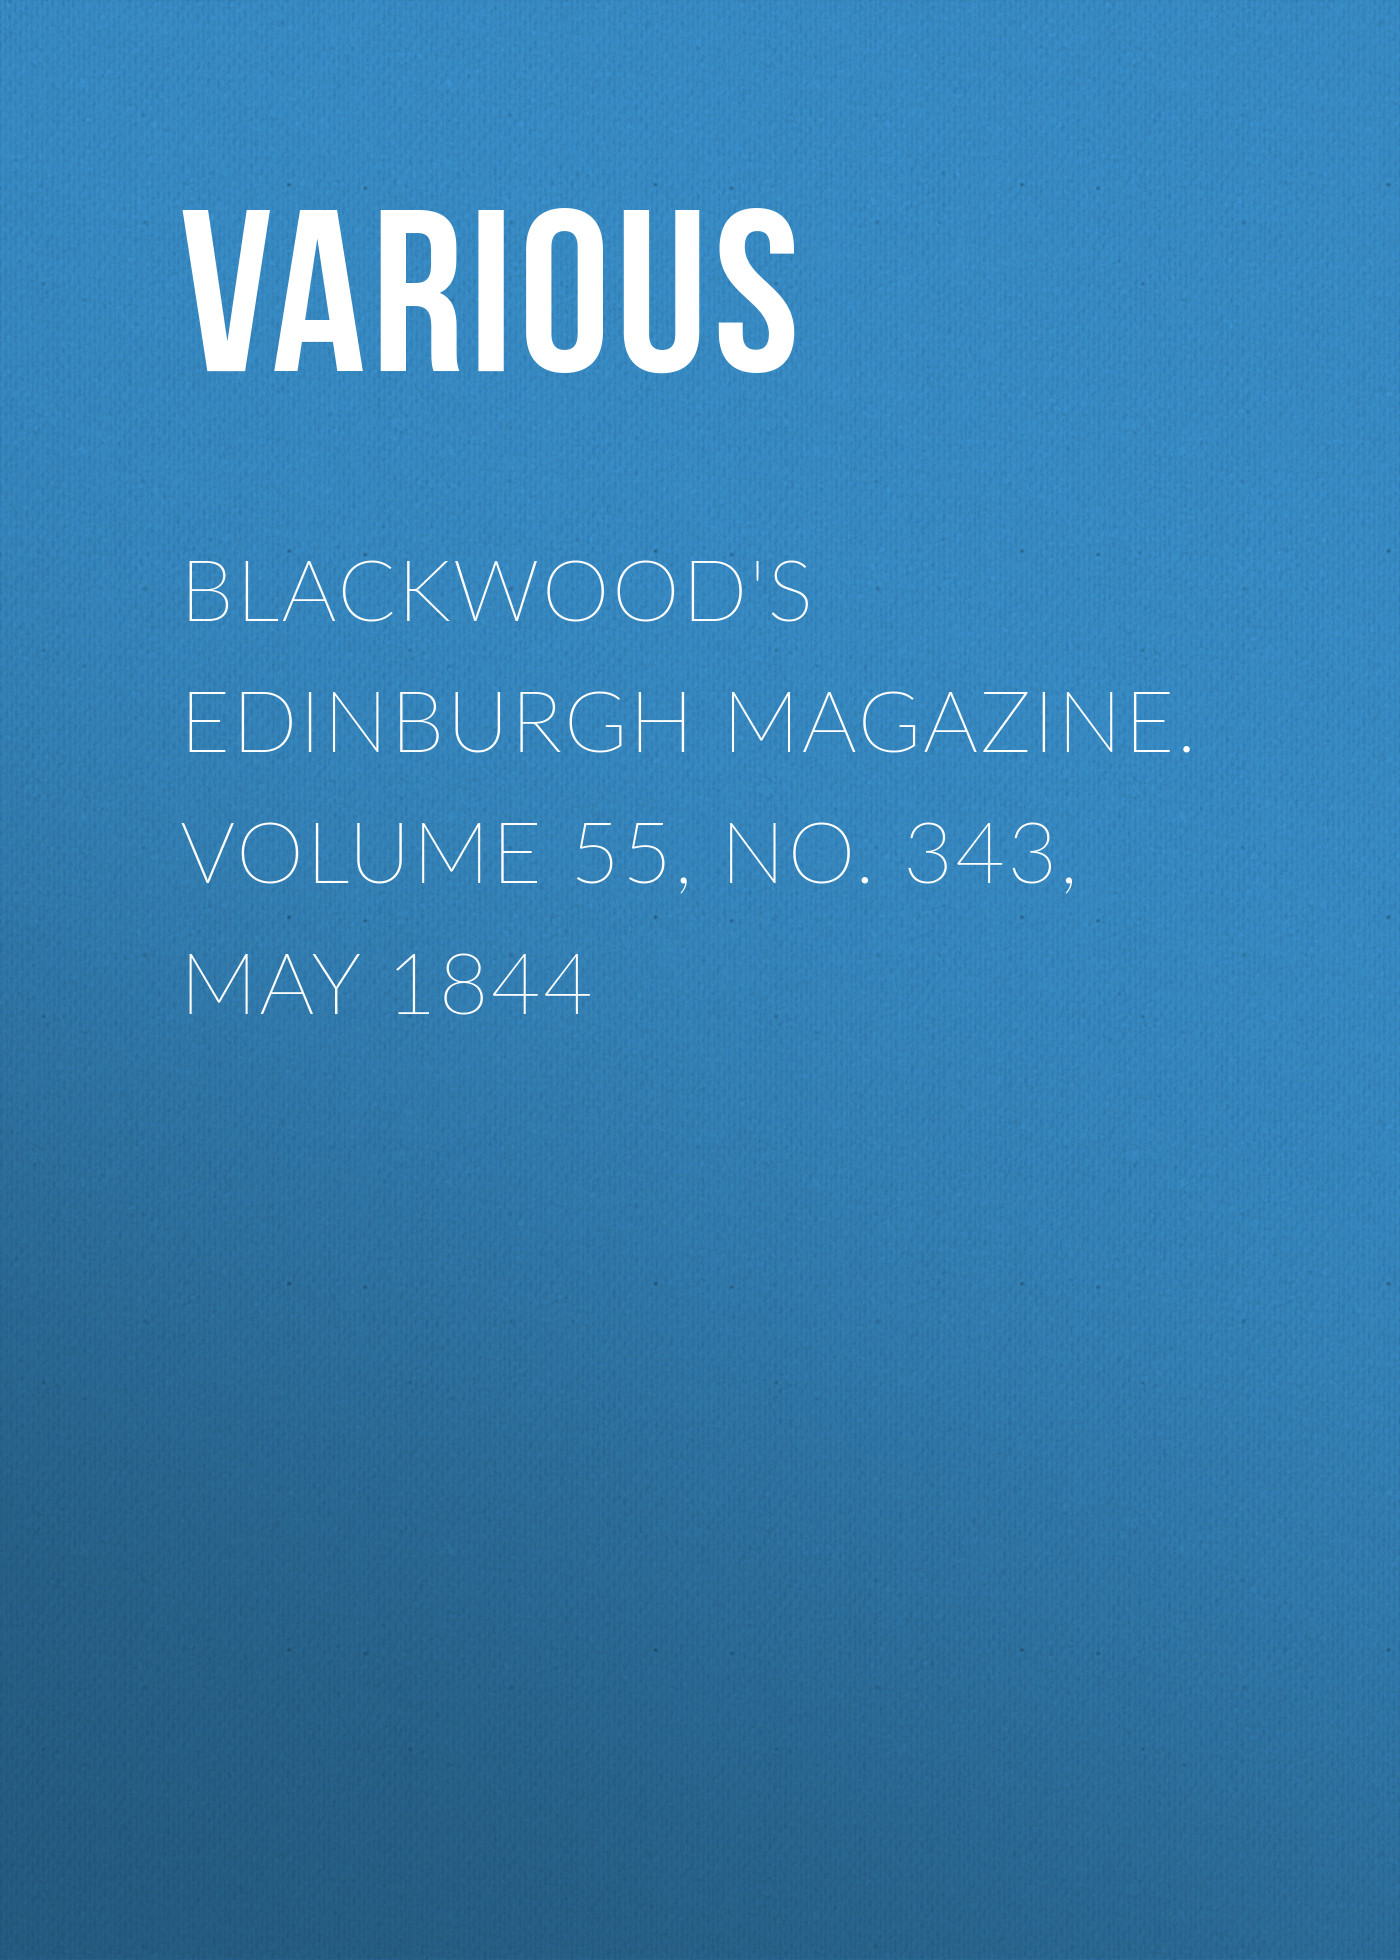 Various Blackwood's Edinburgh Magazine. Volume 55, No. 343, May 1844